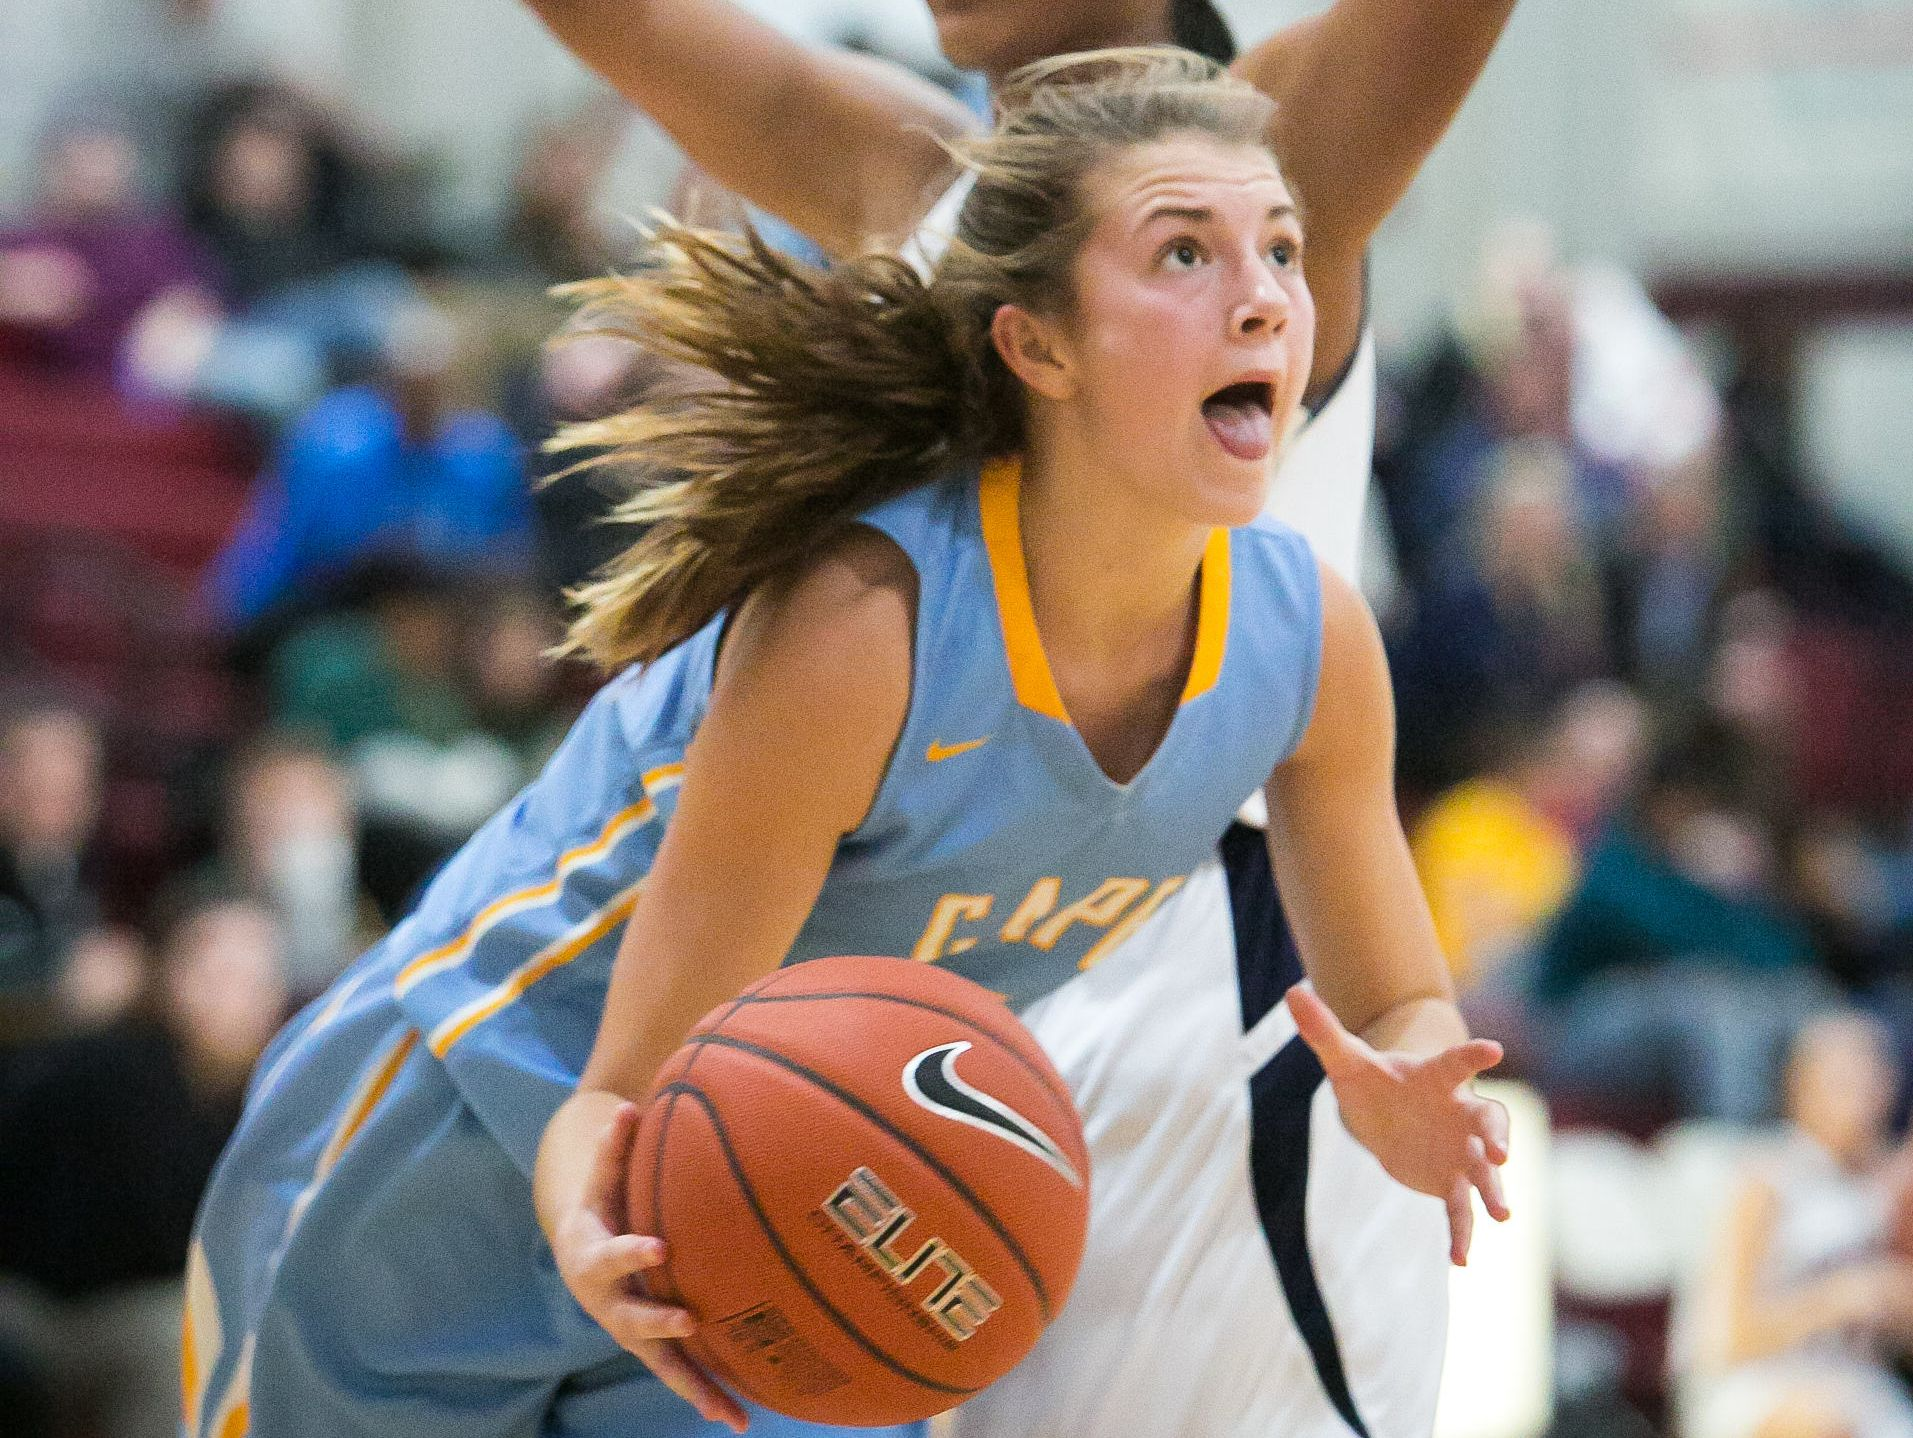 Cape Henlopen guard Alia Marshall dribbles around a defender and scores.